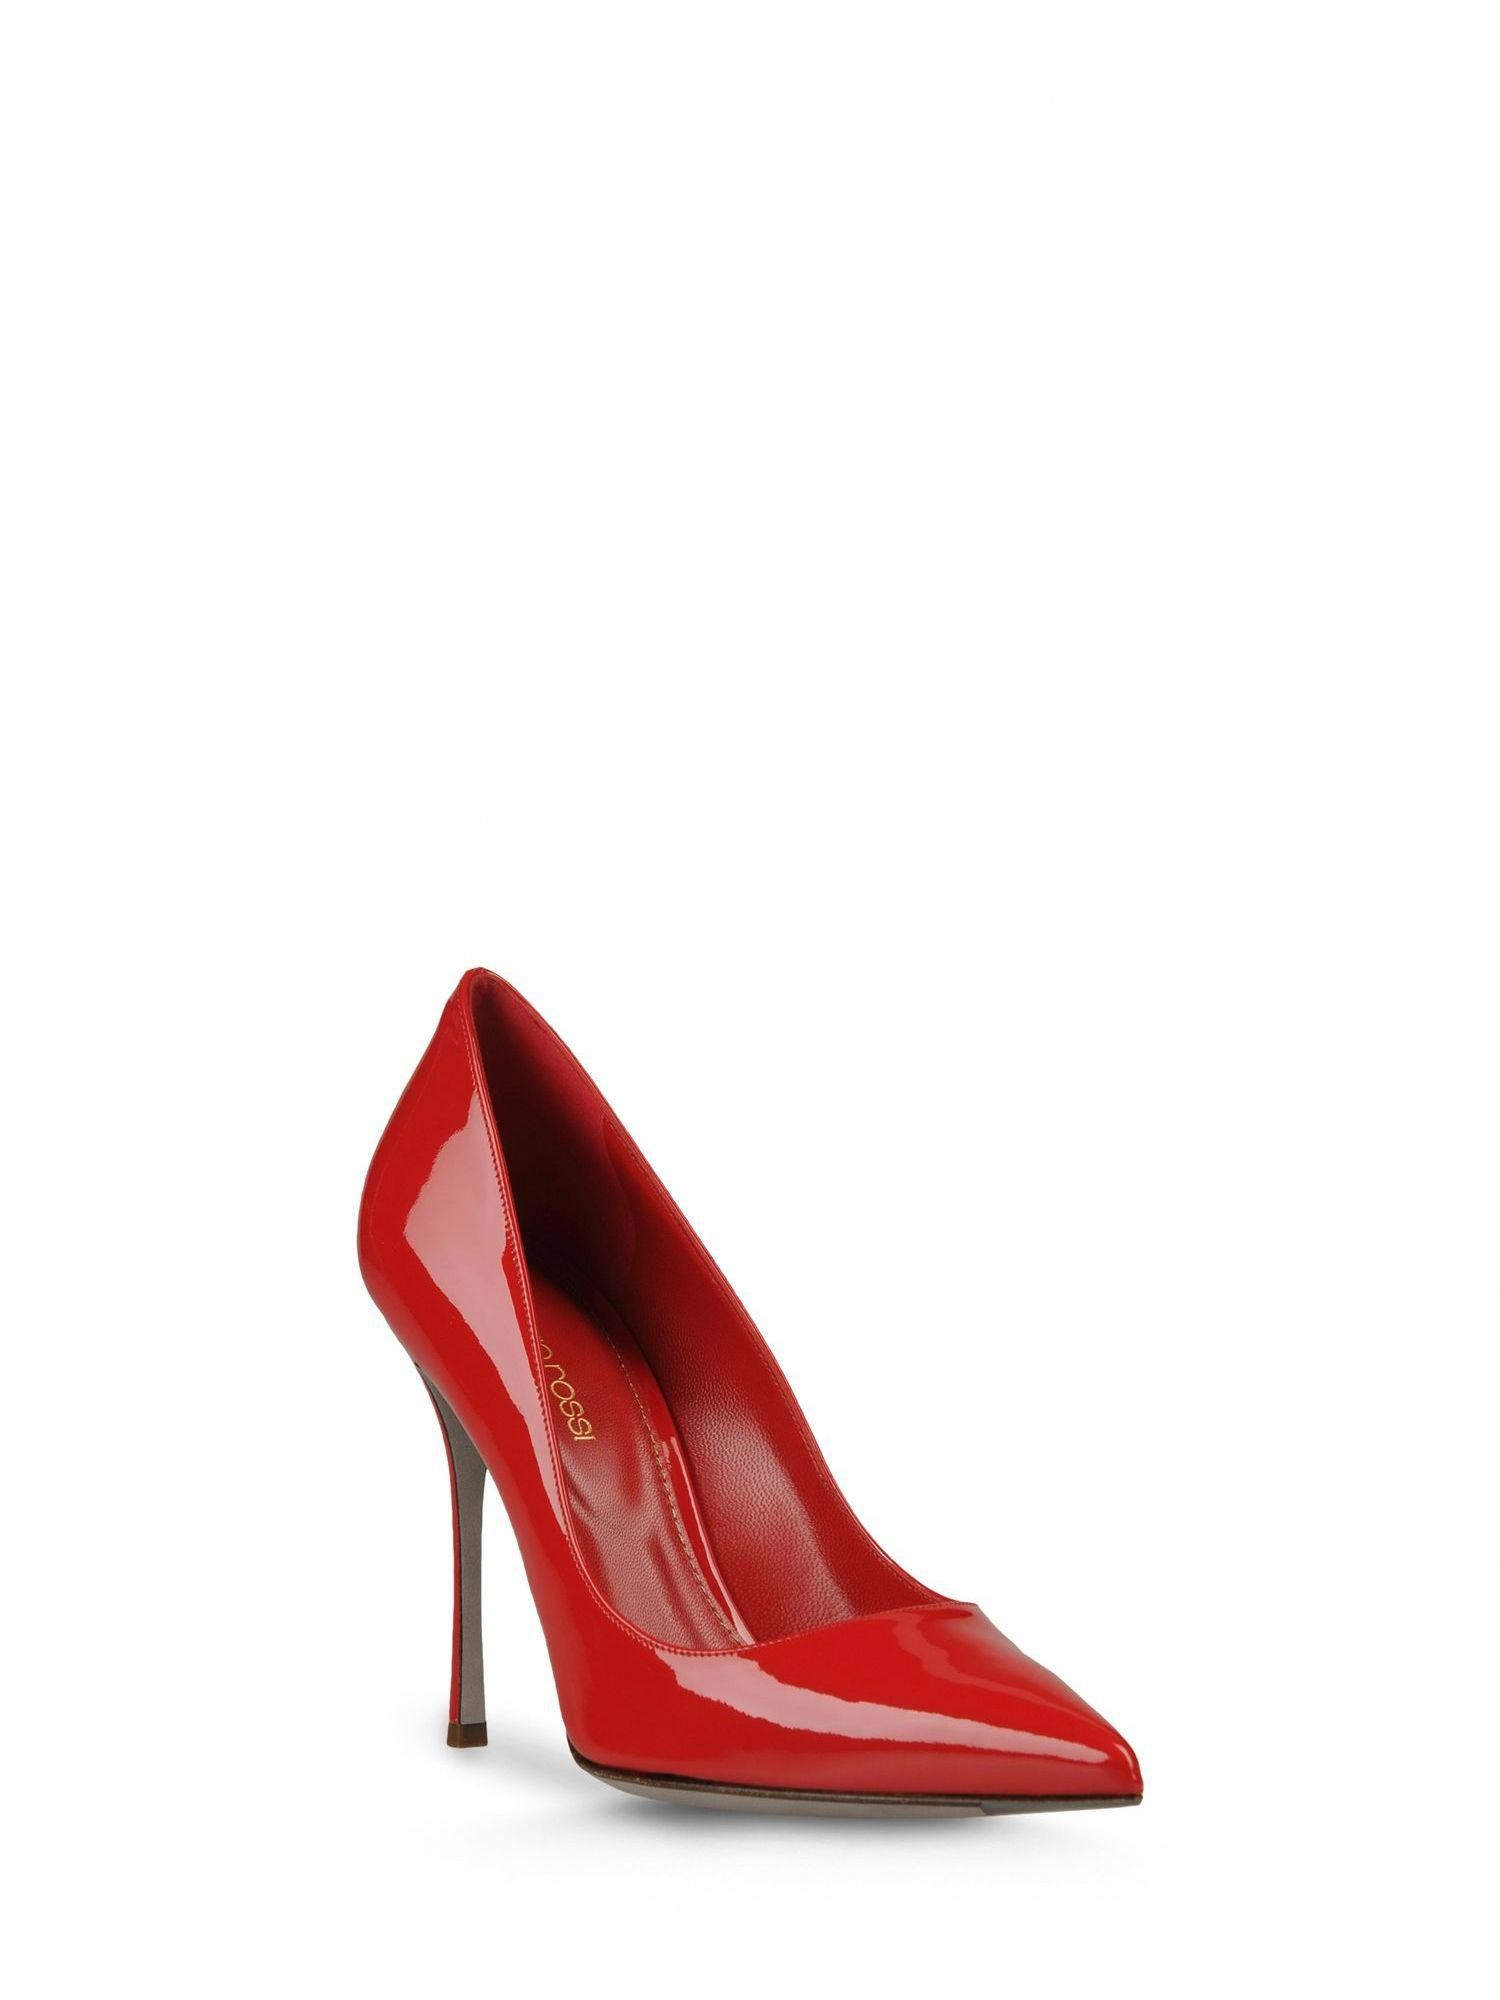 9548f12ecea7b4 Sergio Rossi - Godiva - A43842MVIV016650 - Red patent leather pump. -  Pumps. Varnished effect